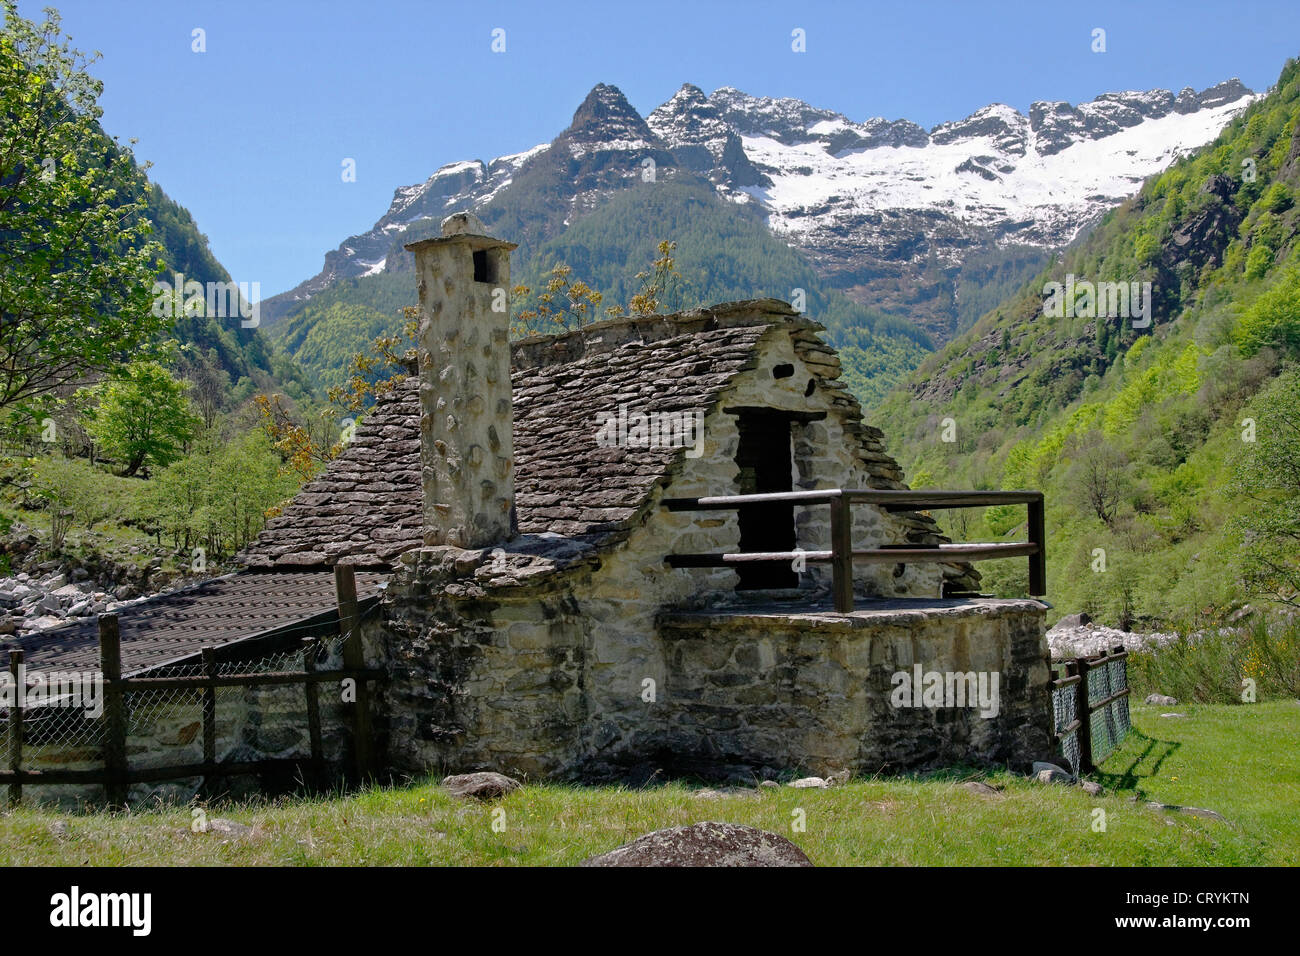 traditional rustico stone house - vegornesso valley - canton of ticino - switzerland - Stock Image